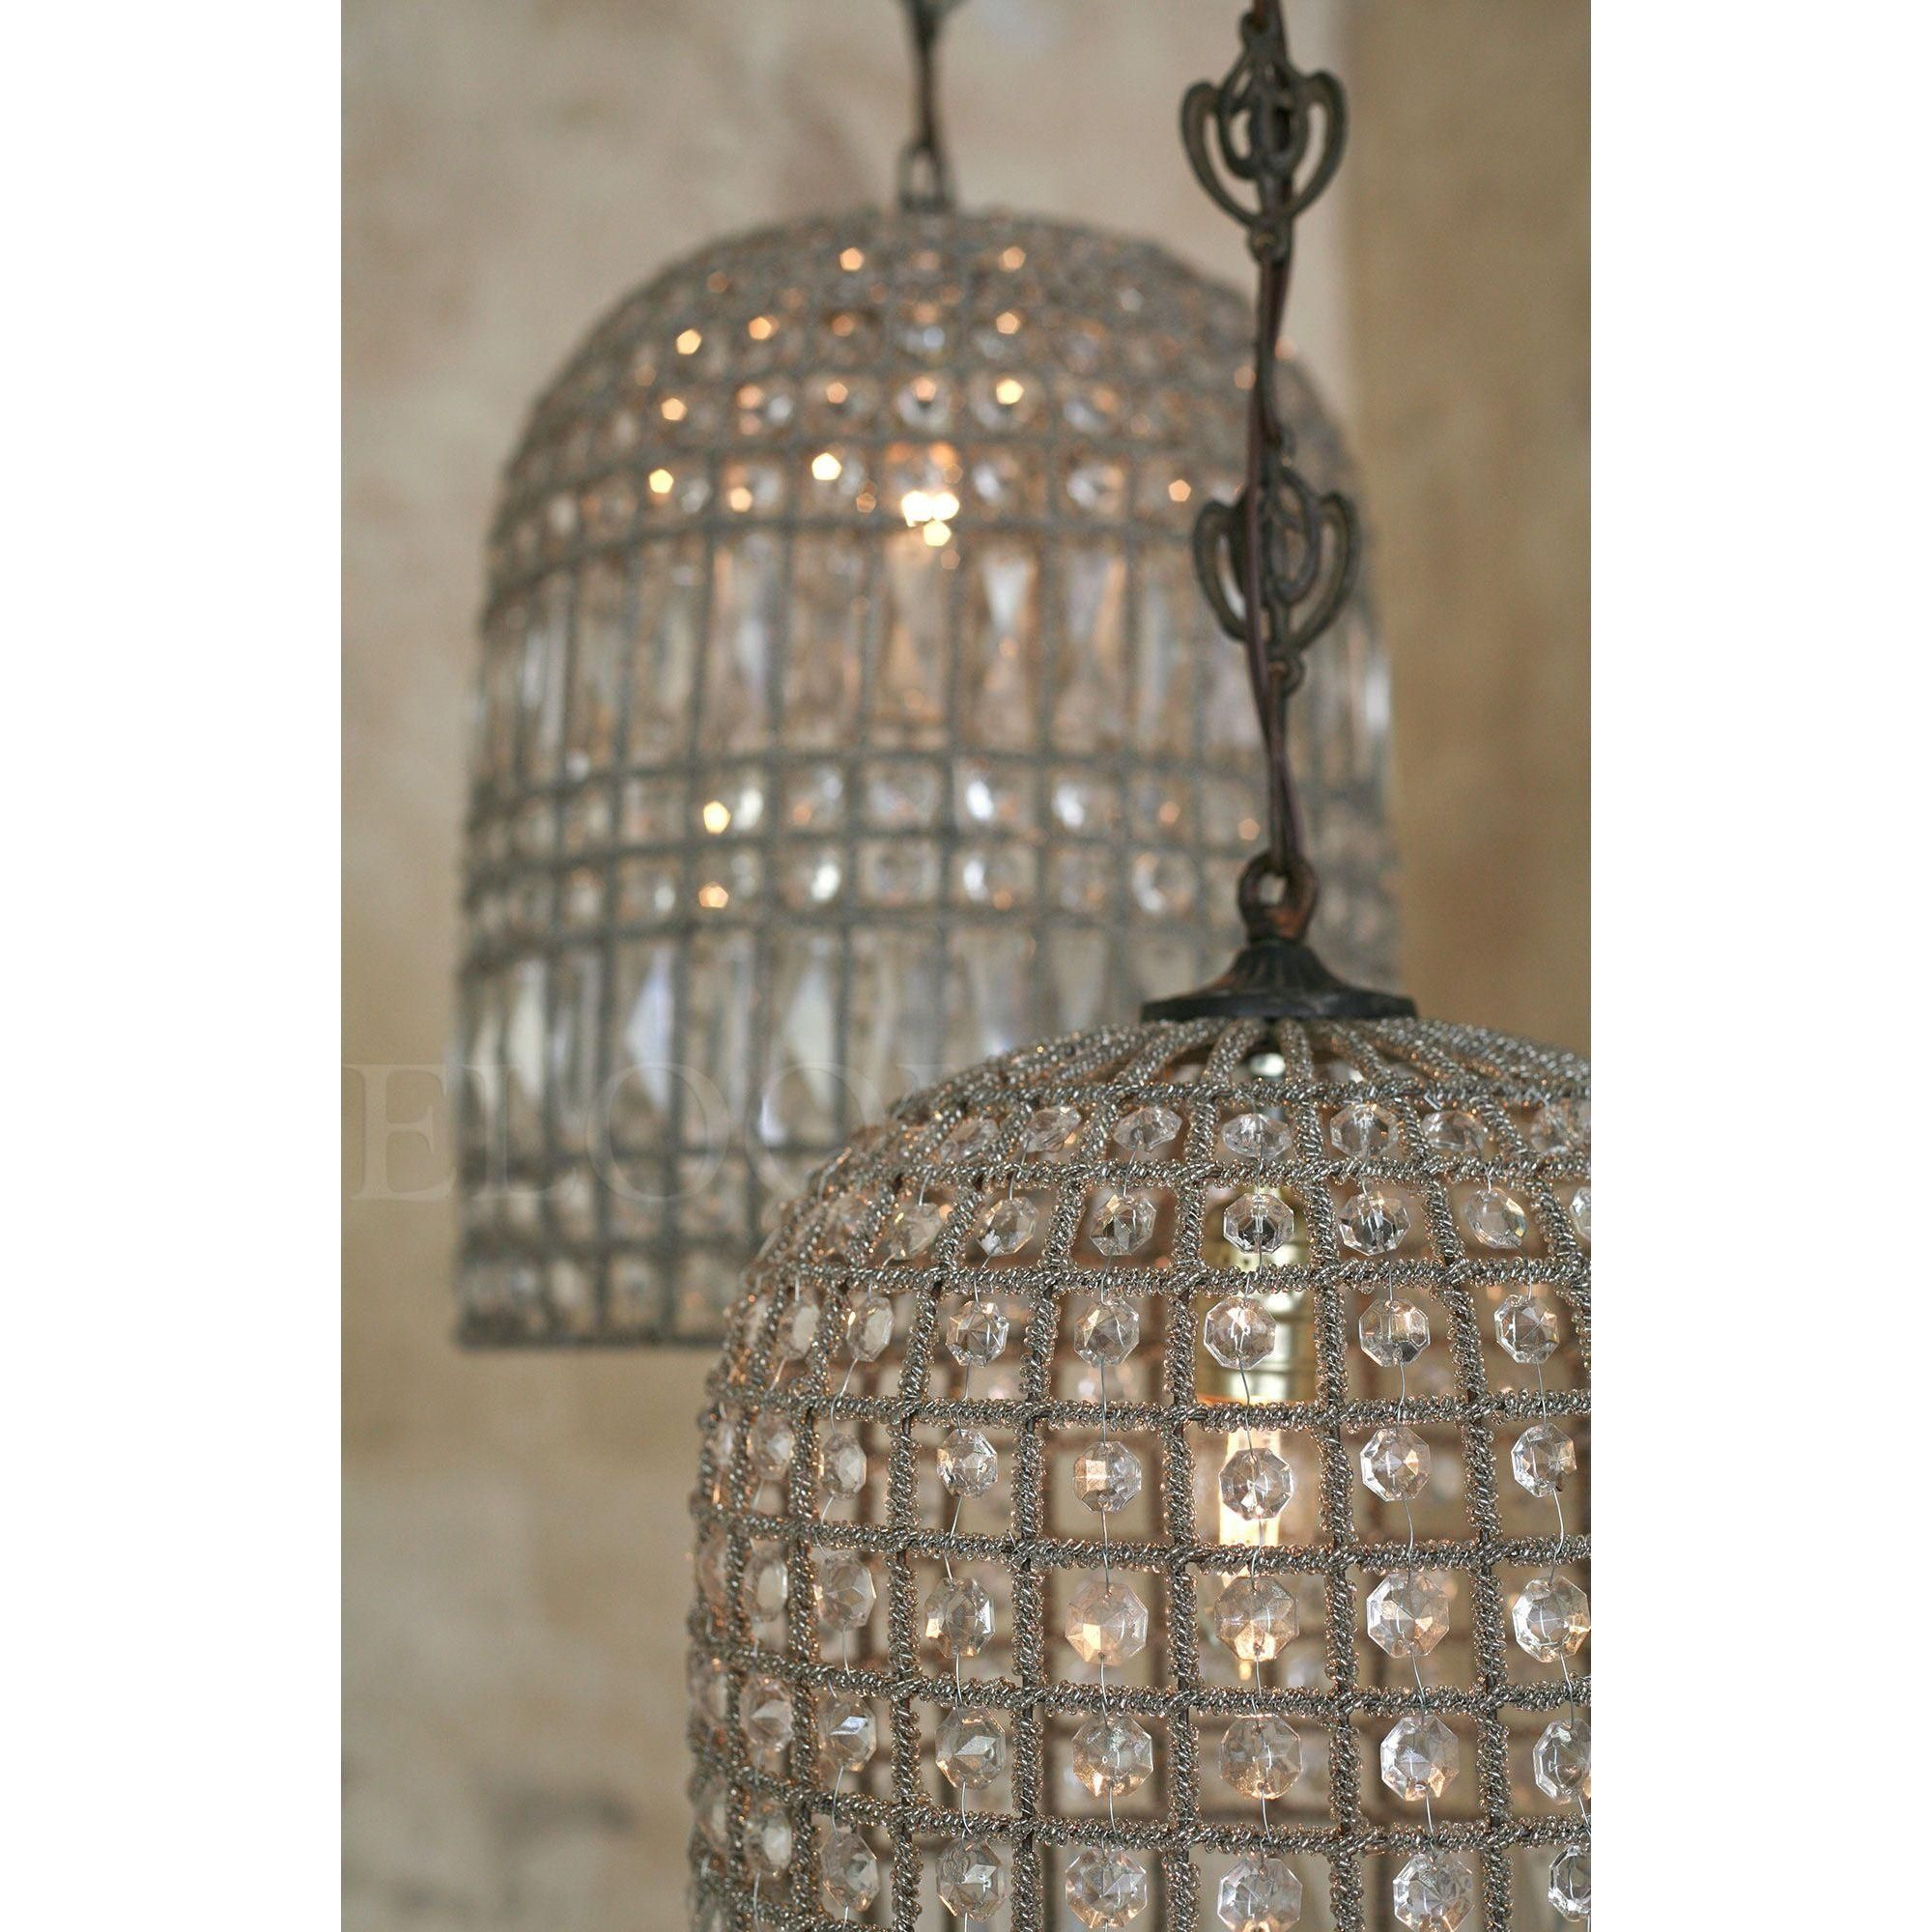 com james shown clear lighting cfm crystal swarovski moder mini finish in capitol item lamp r and gold shade